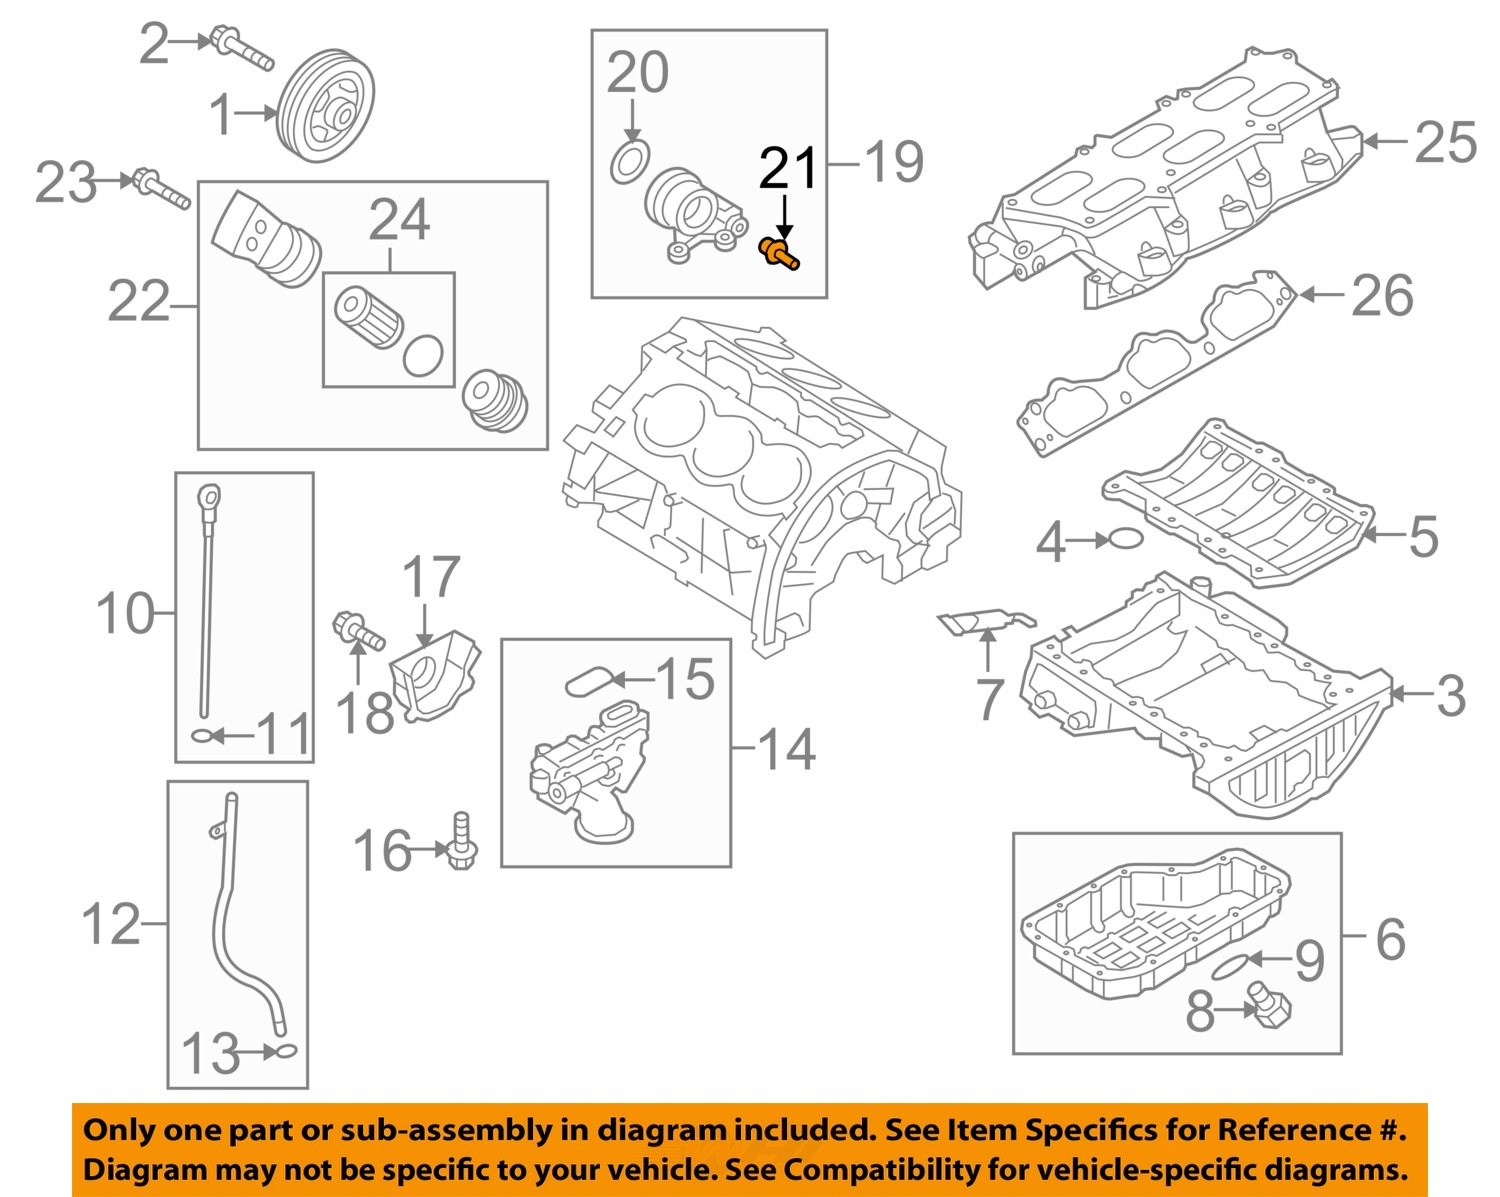 Ford Oil Pressure Switch Wiring Schematic Diagrams 2002 Sonata Diagram For Light